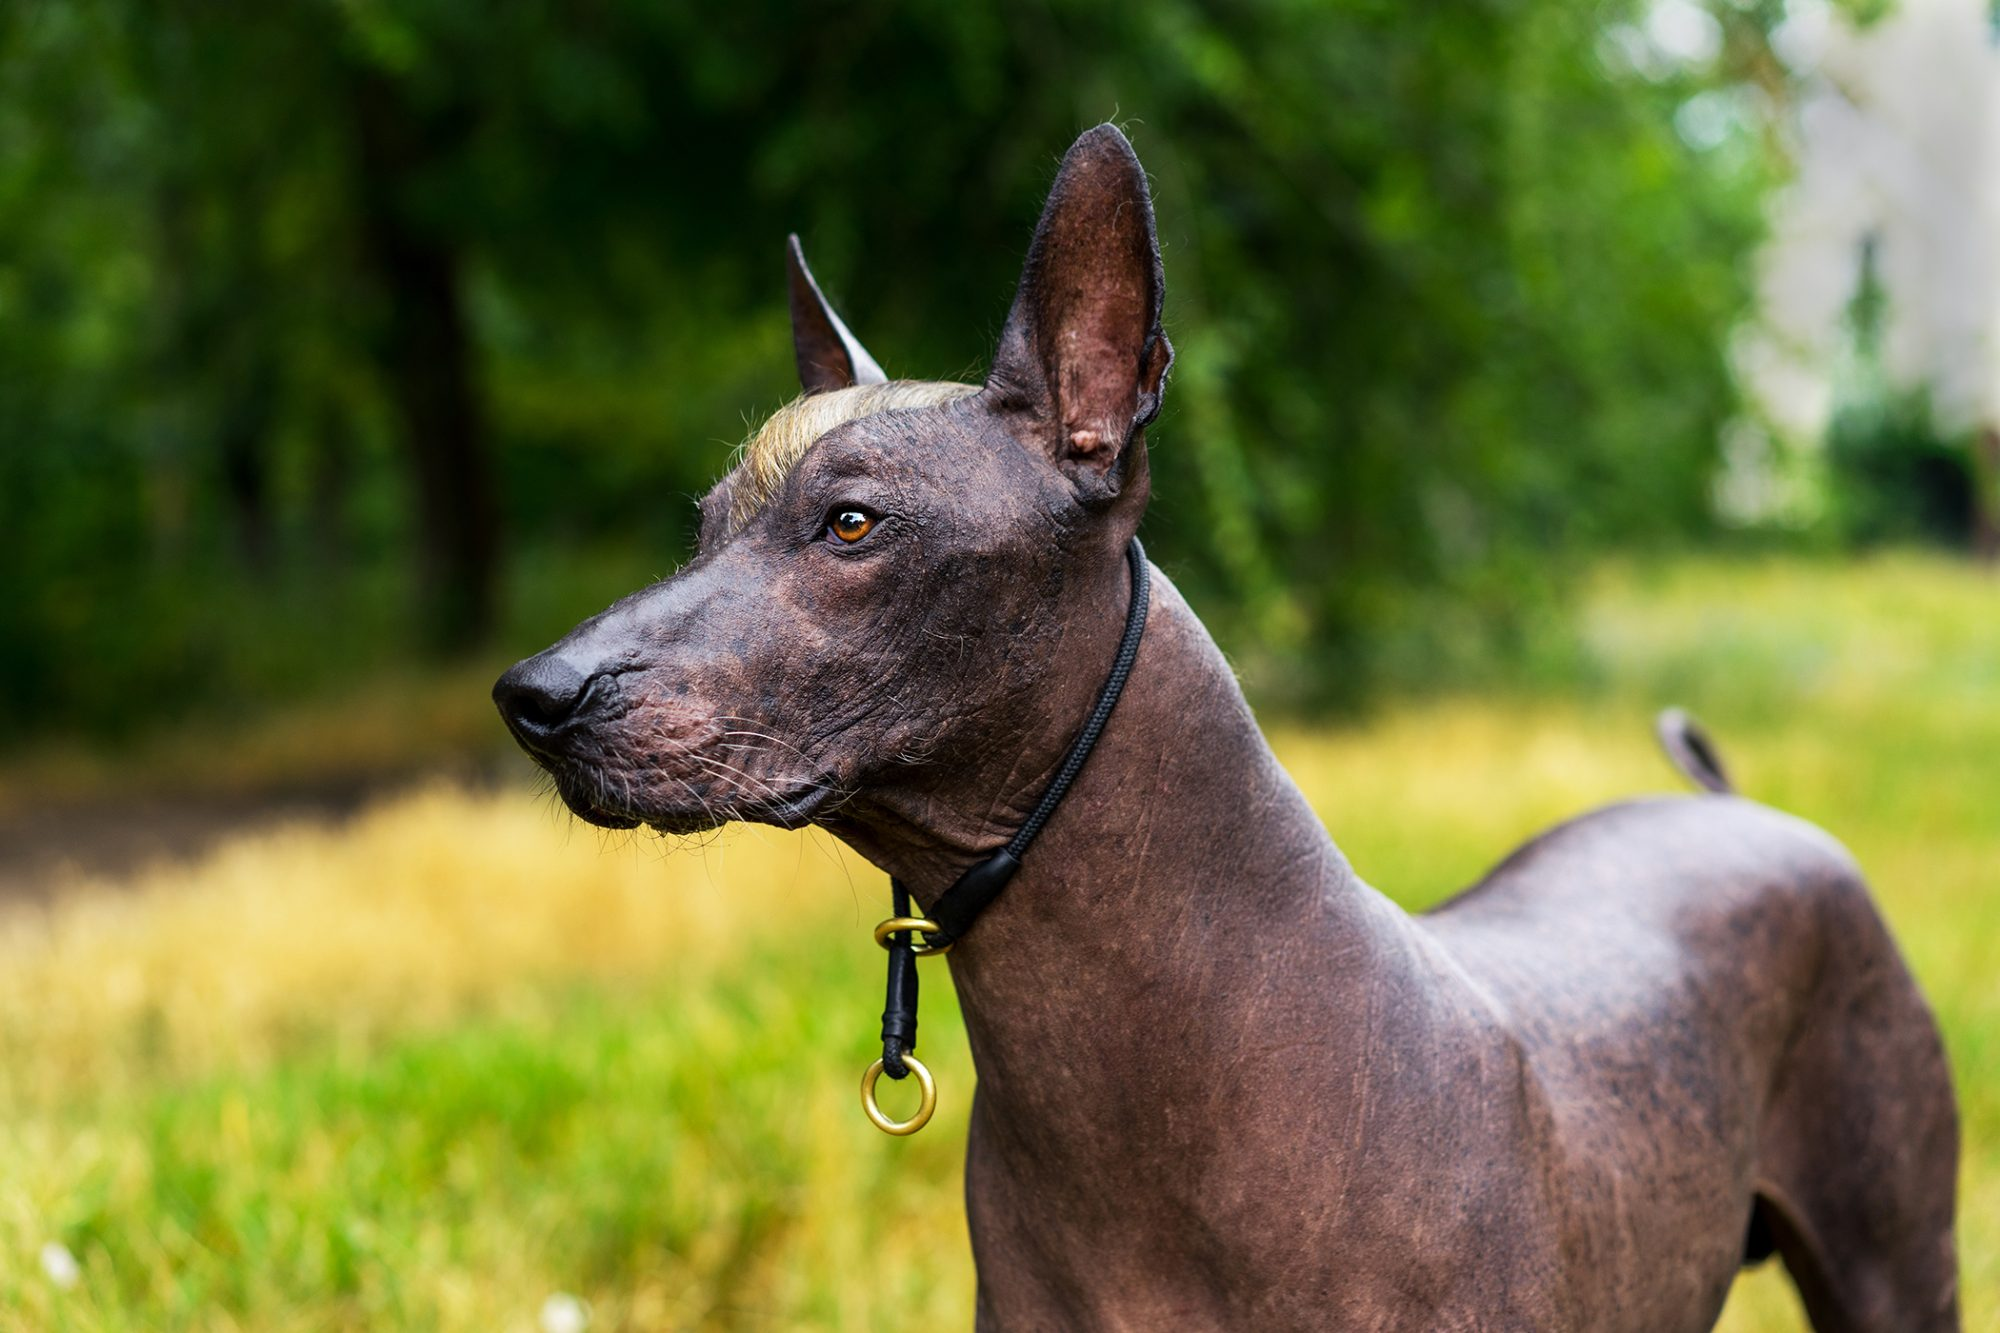 Close up portrait of Mexican hairless dog, purple-red color